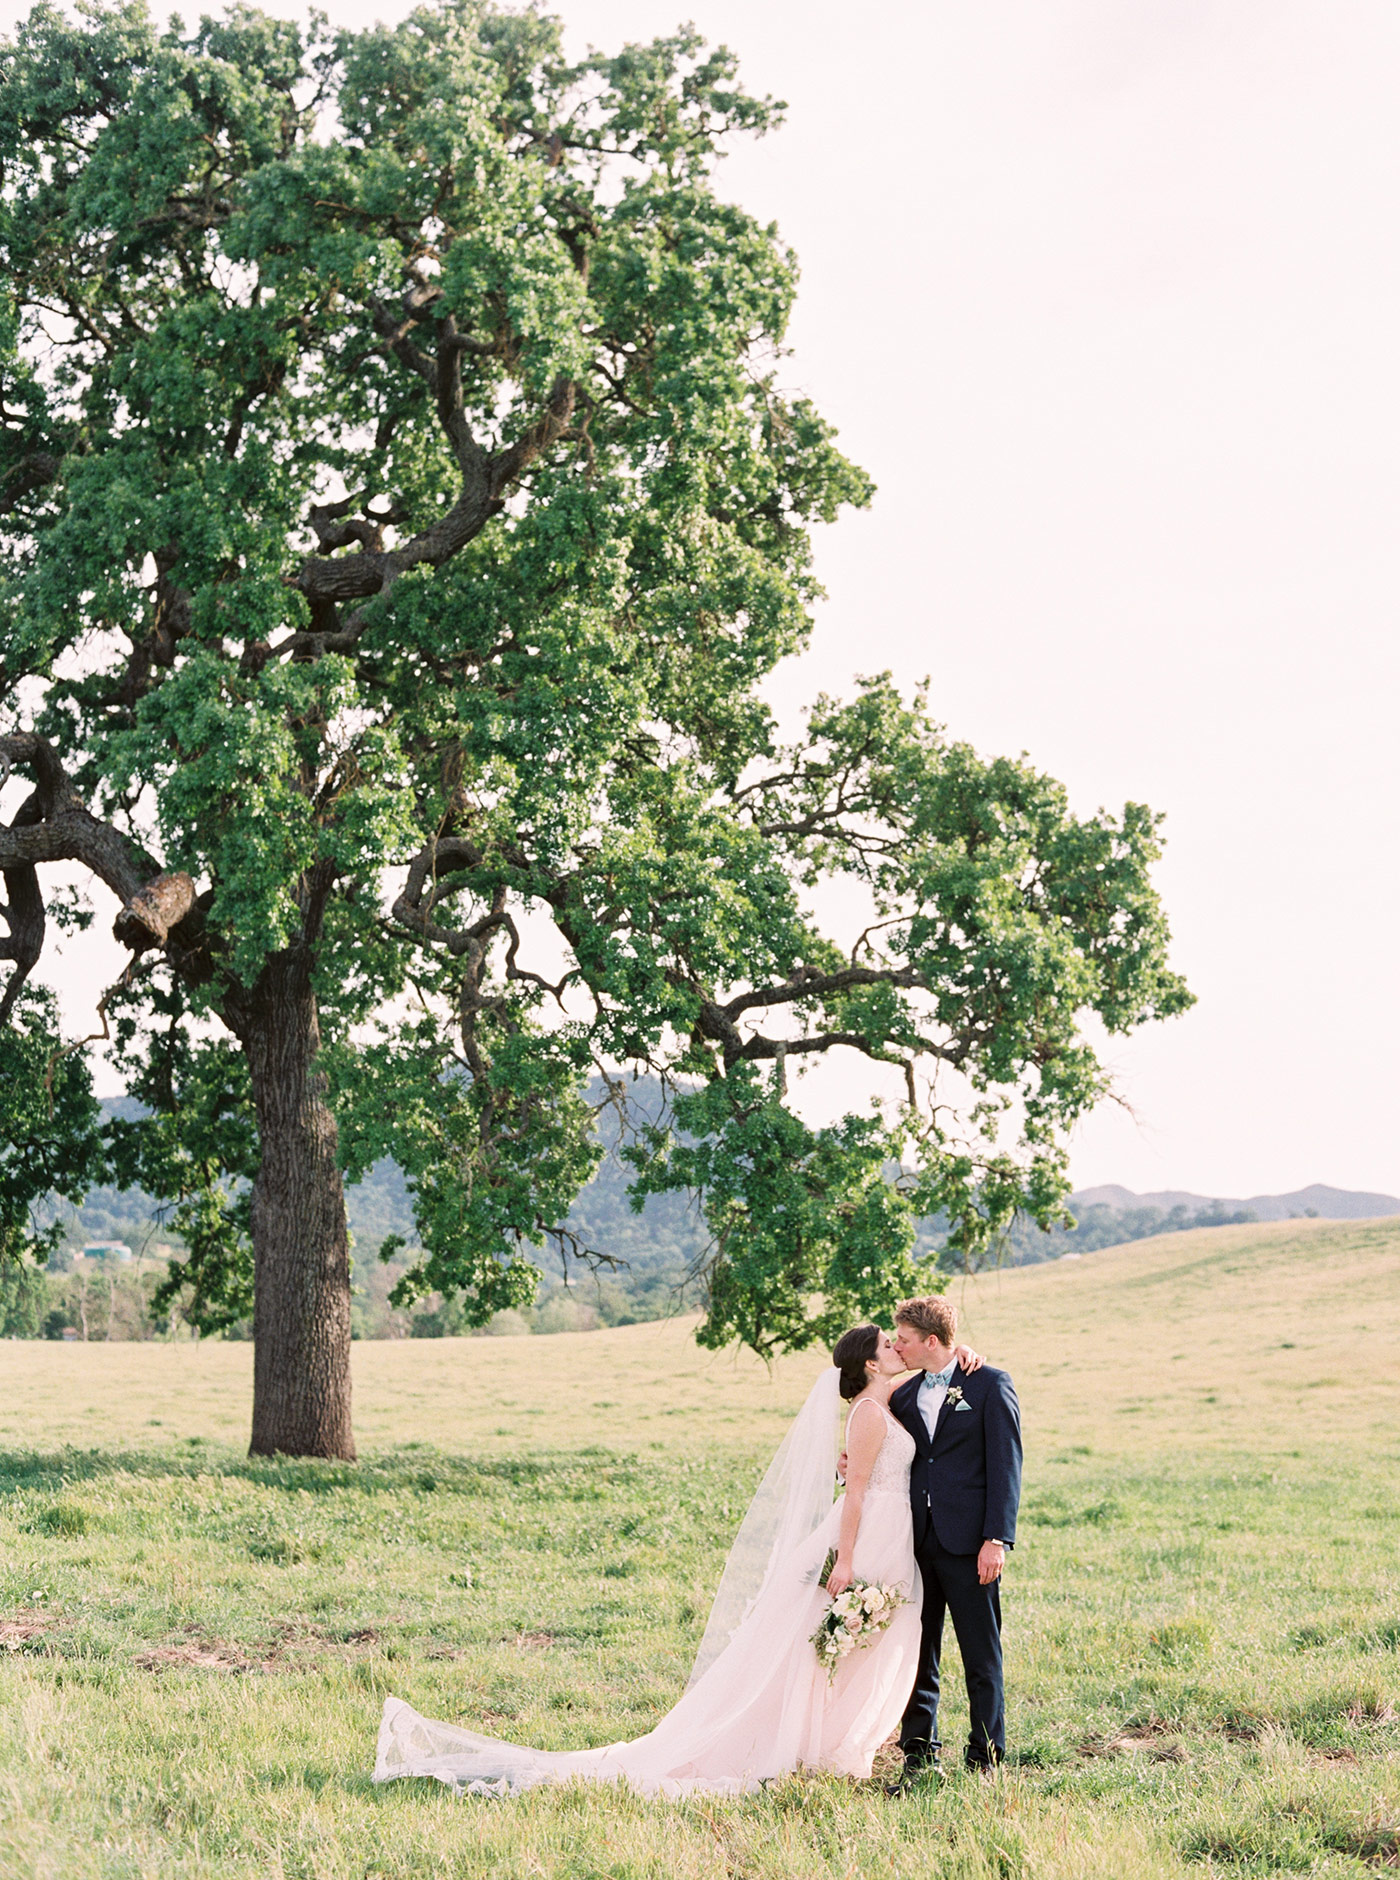 Fine Art Film Wedding Photographer San Luis Obispo California Ashley Ludaescher Photography